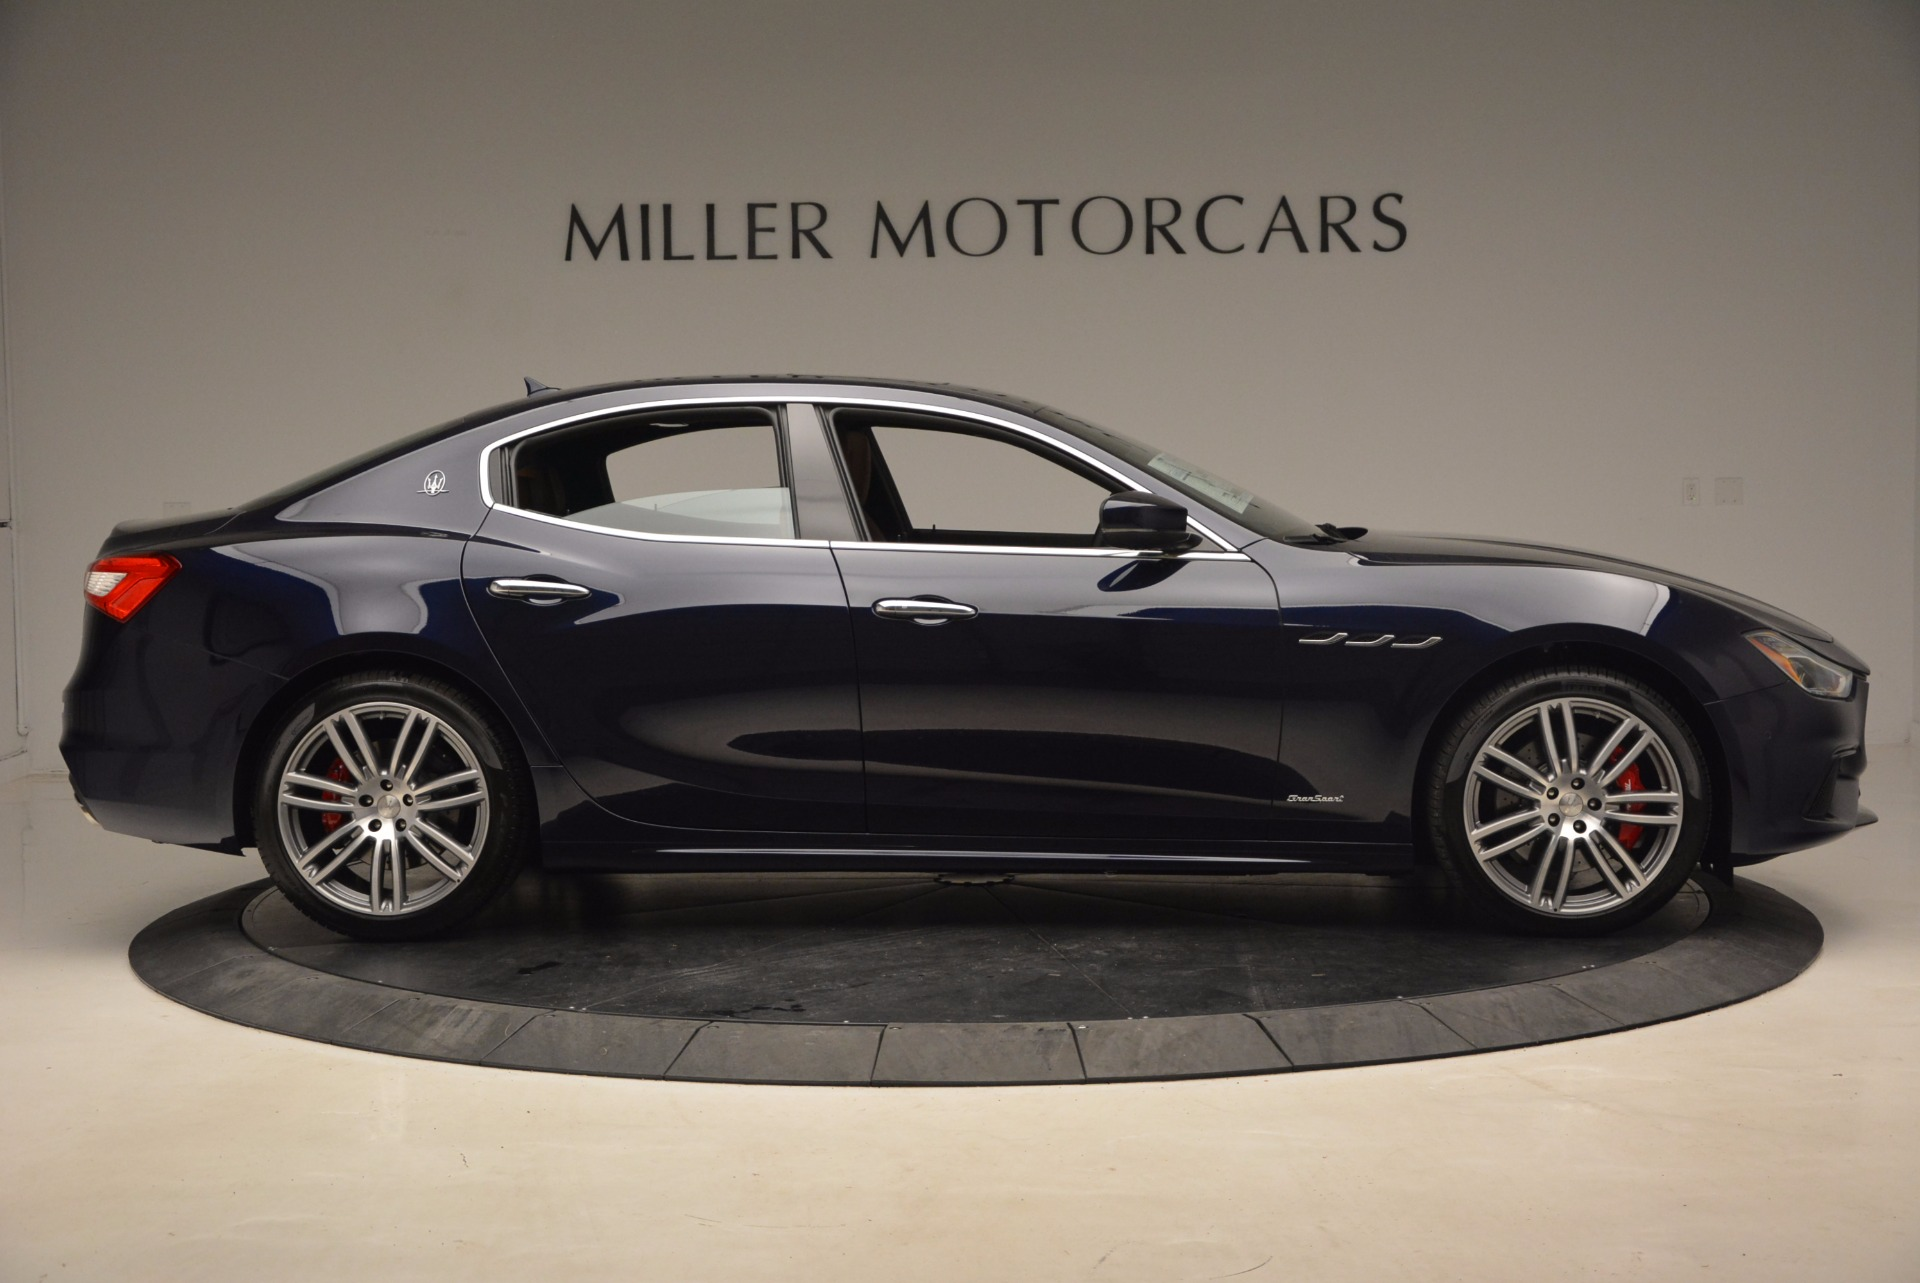 New 2018 Maserati Ghibli S Q4 Gransport For Sale In Greenwich, CT 1562_p9